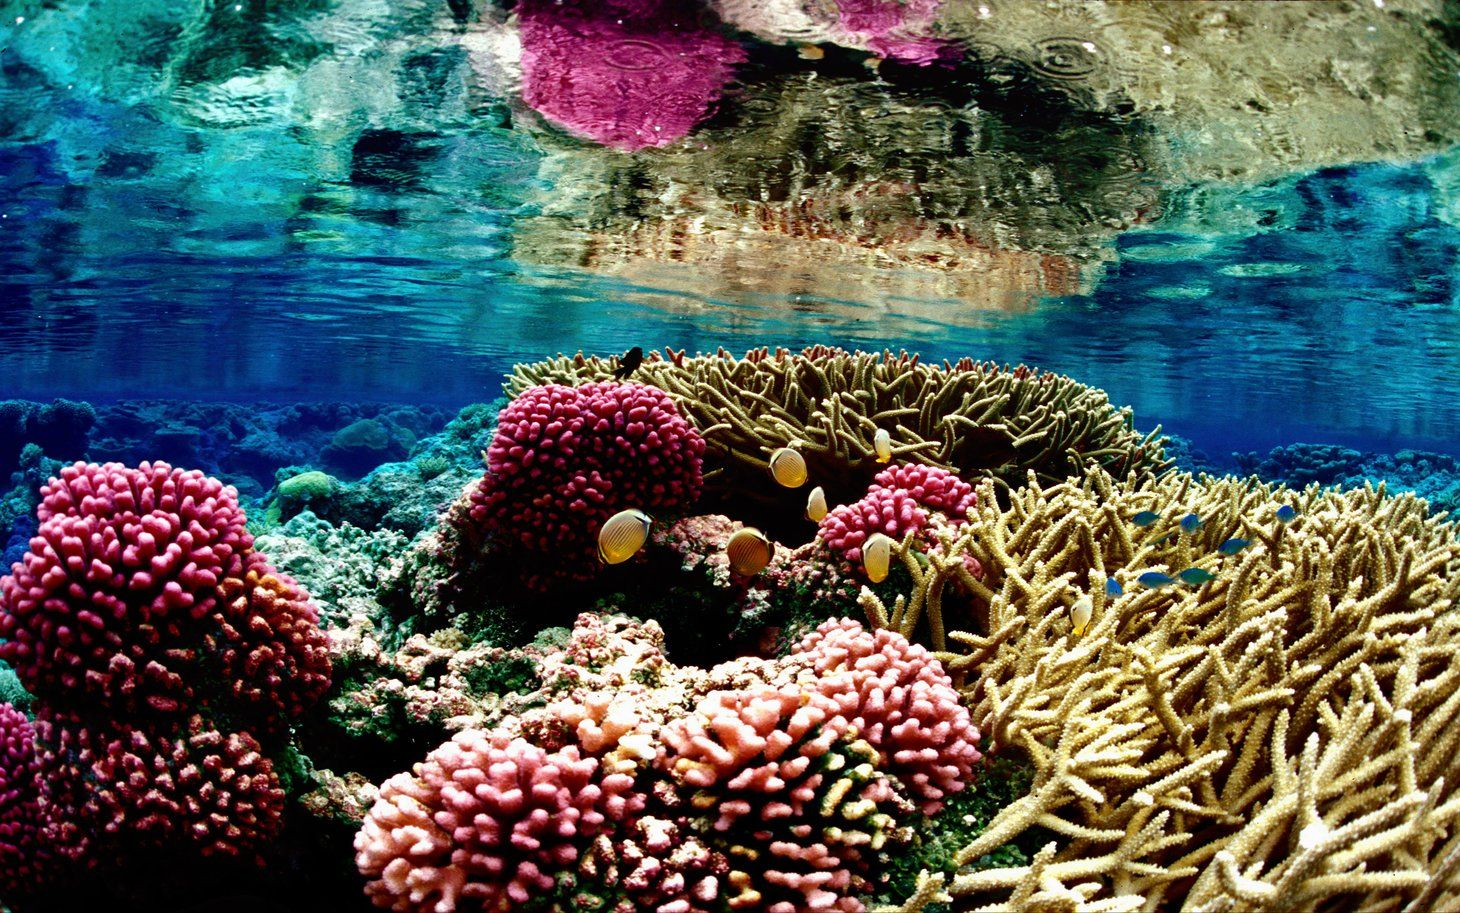 Coral reefs under global threat from climate change